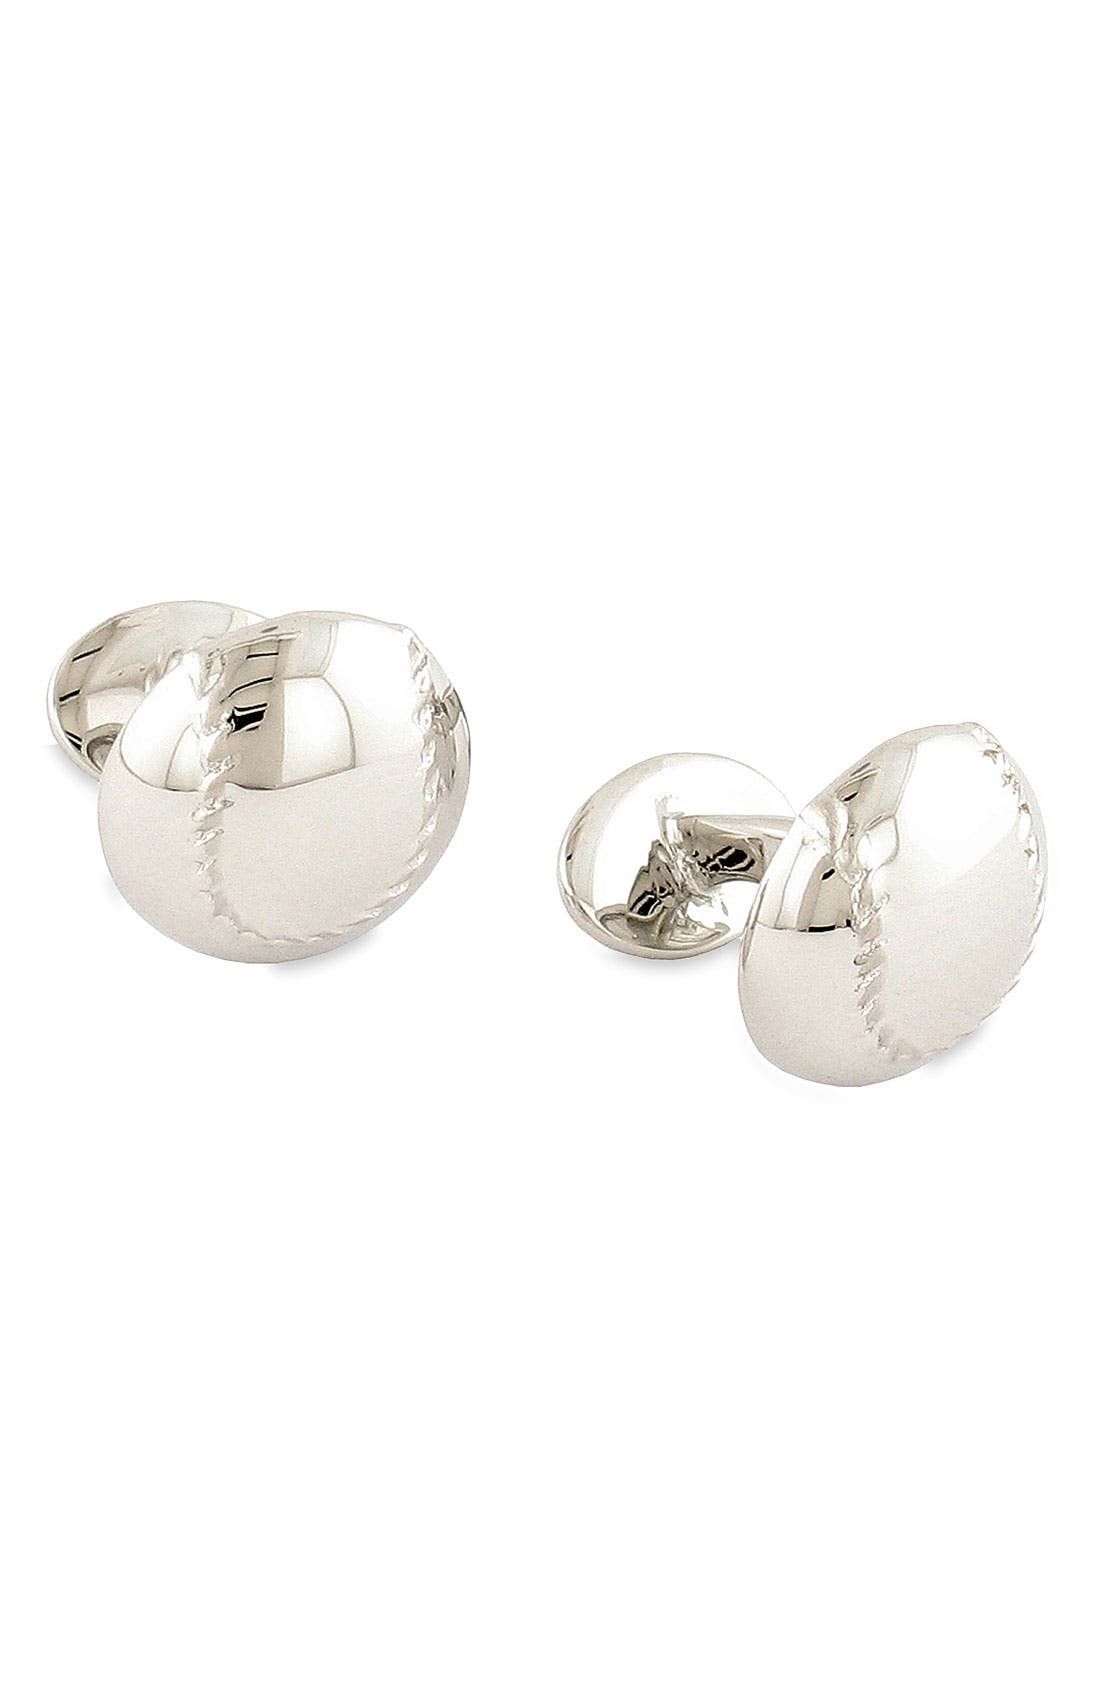 Alternate Image 1 Selected - David Donahue 'Baseball' Sterling Silver Cuff Links